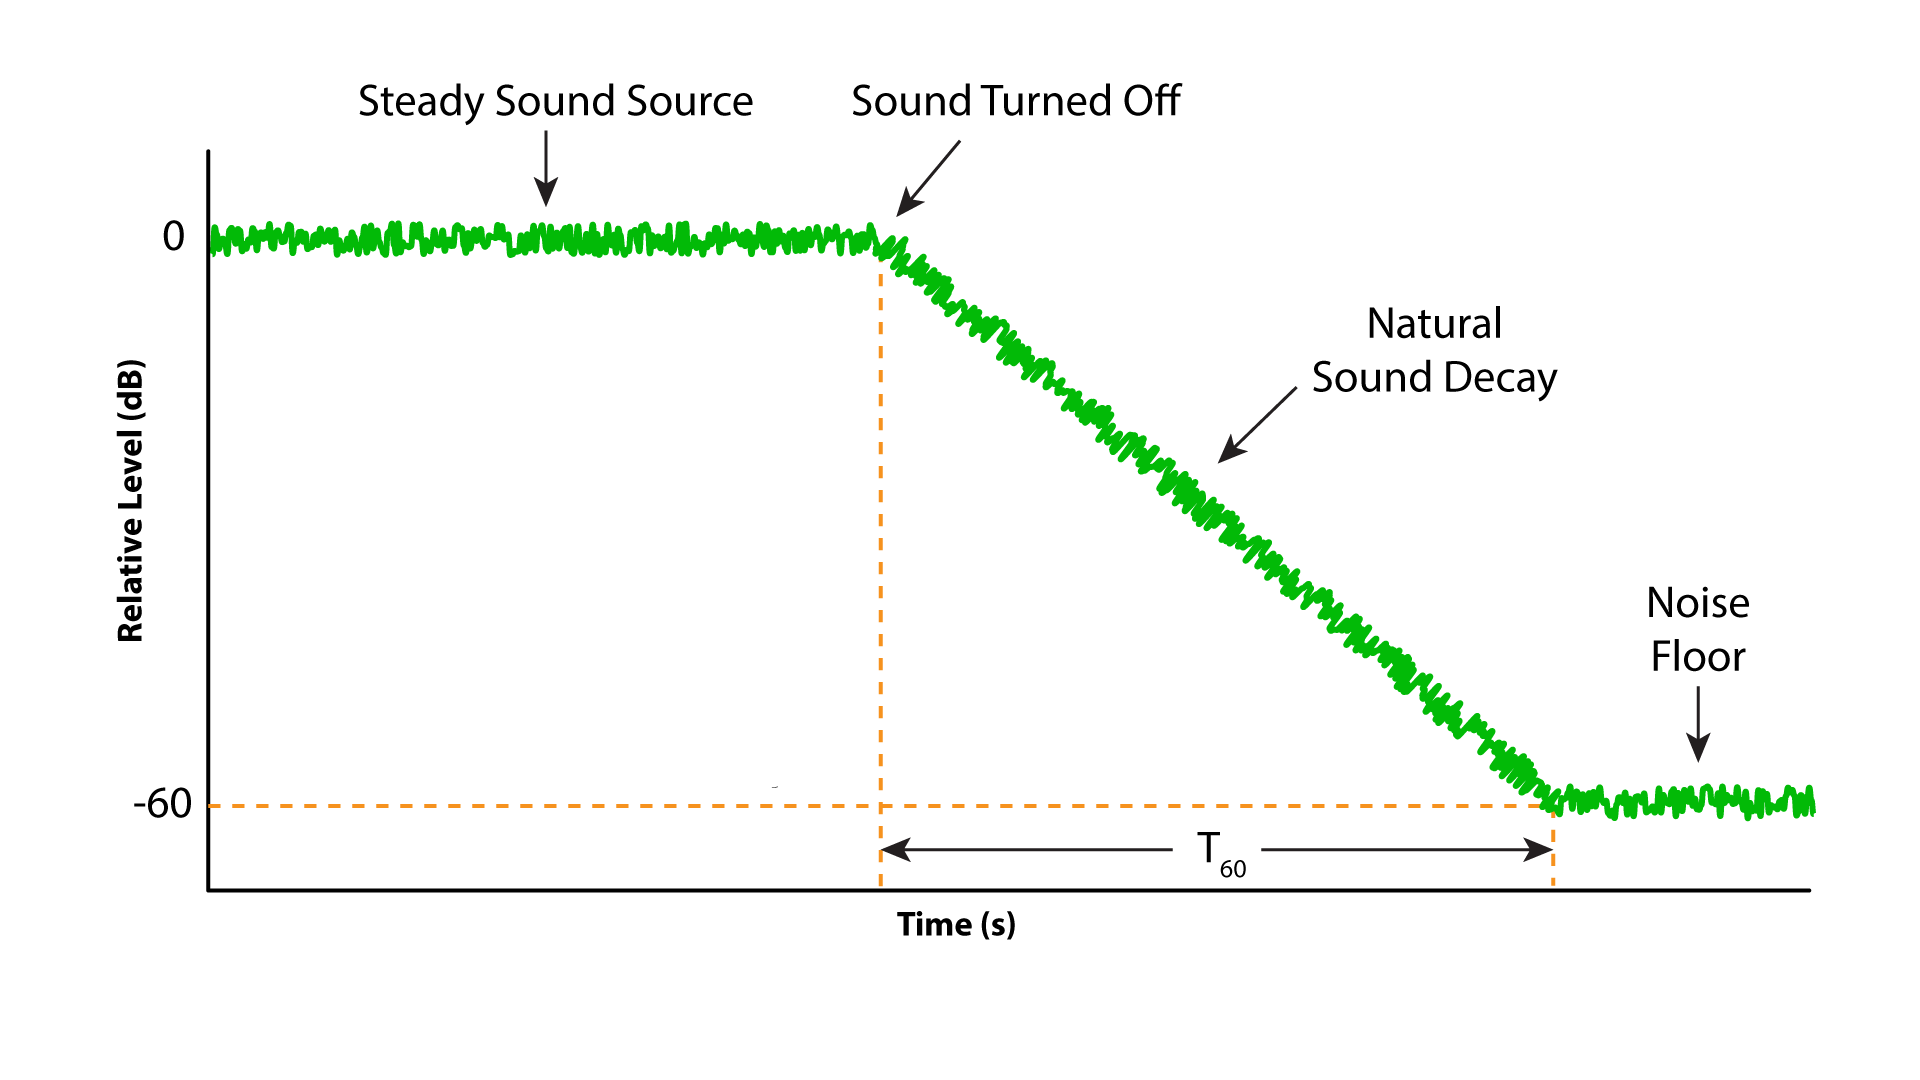 Figure 1 - The reverberation time (RT) is a measure of the persistence of sound in a space. Reverberation is a diffuse field that produces approximately the same RT for any position in the room.